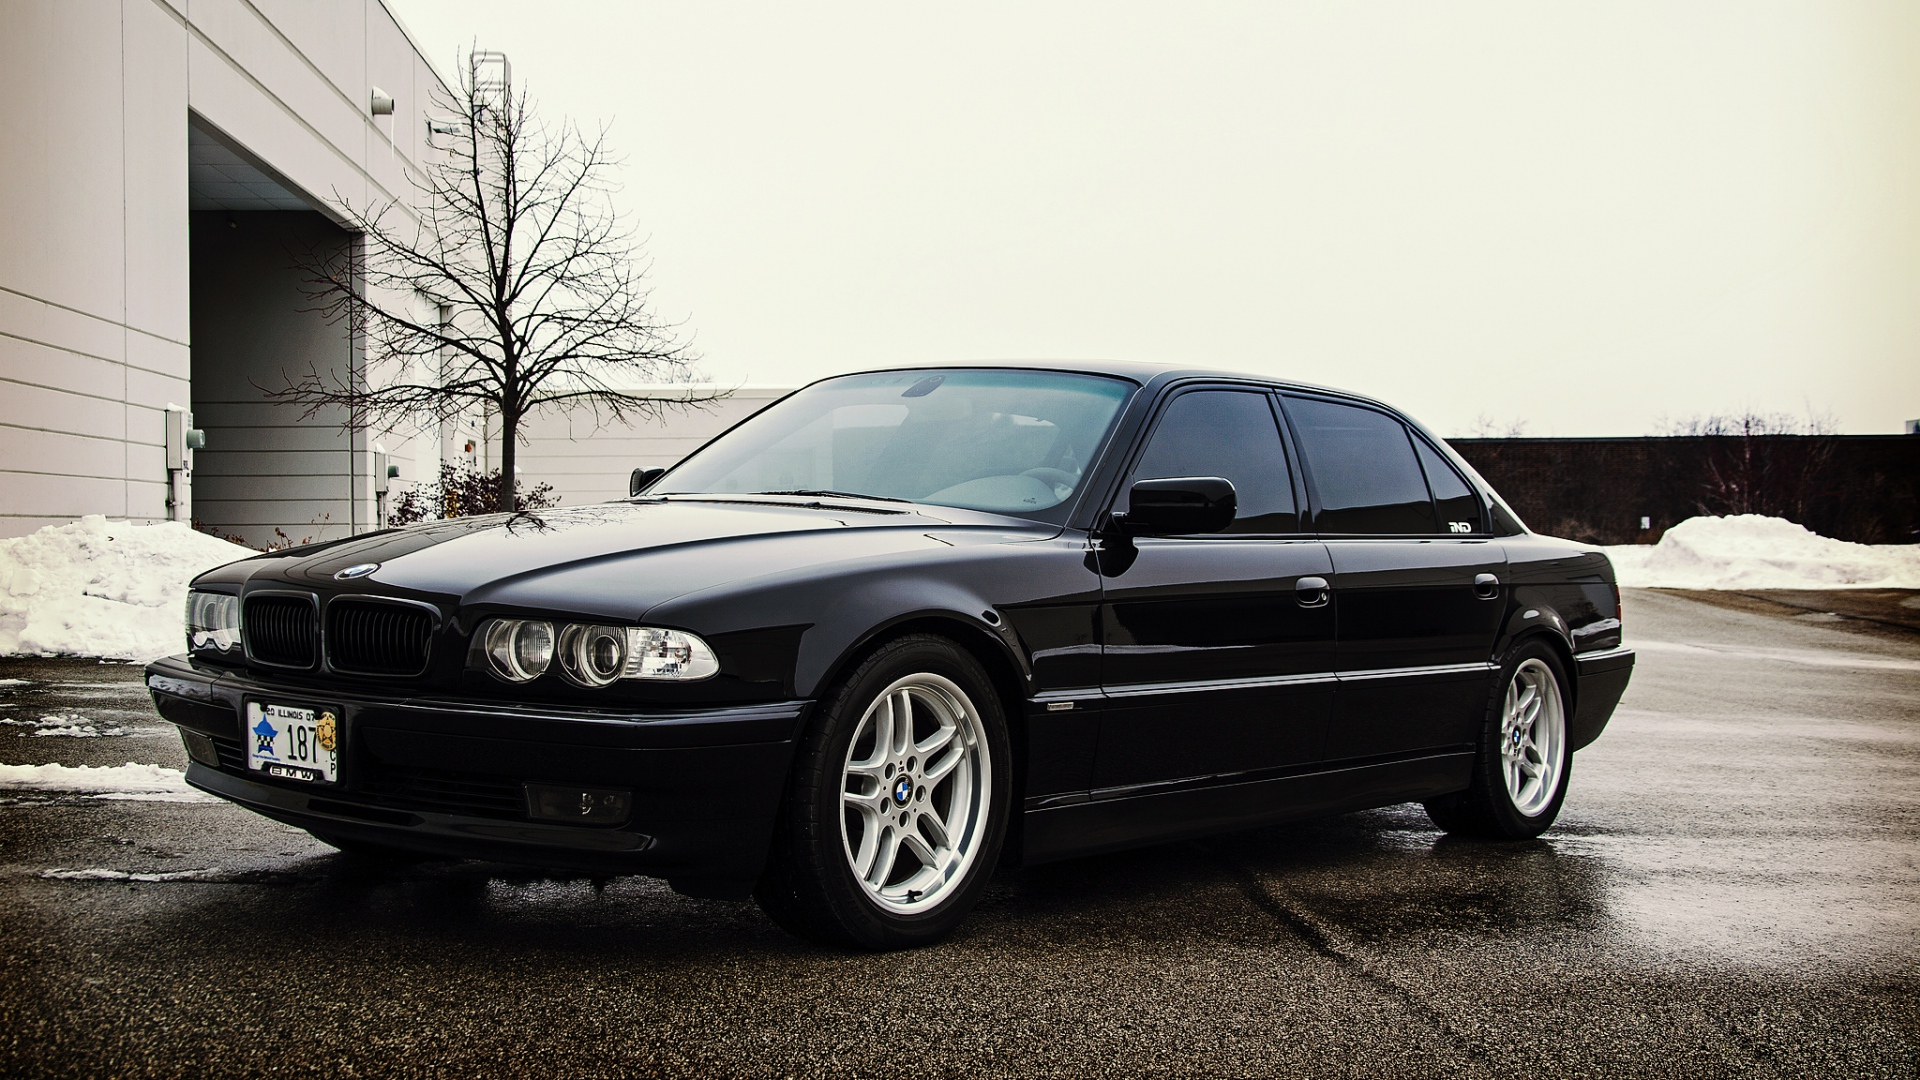 Bmw-E-i-1920x1080-Need-iPhone-S-Plus-Background-for-IPhoneSPlus-Follow-iP-wallpaper-wp3403433